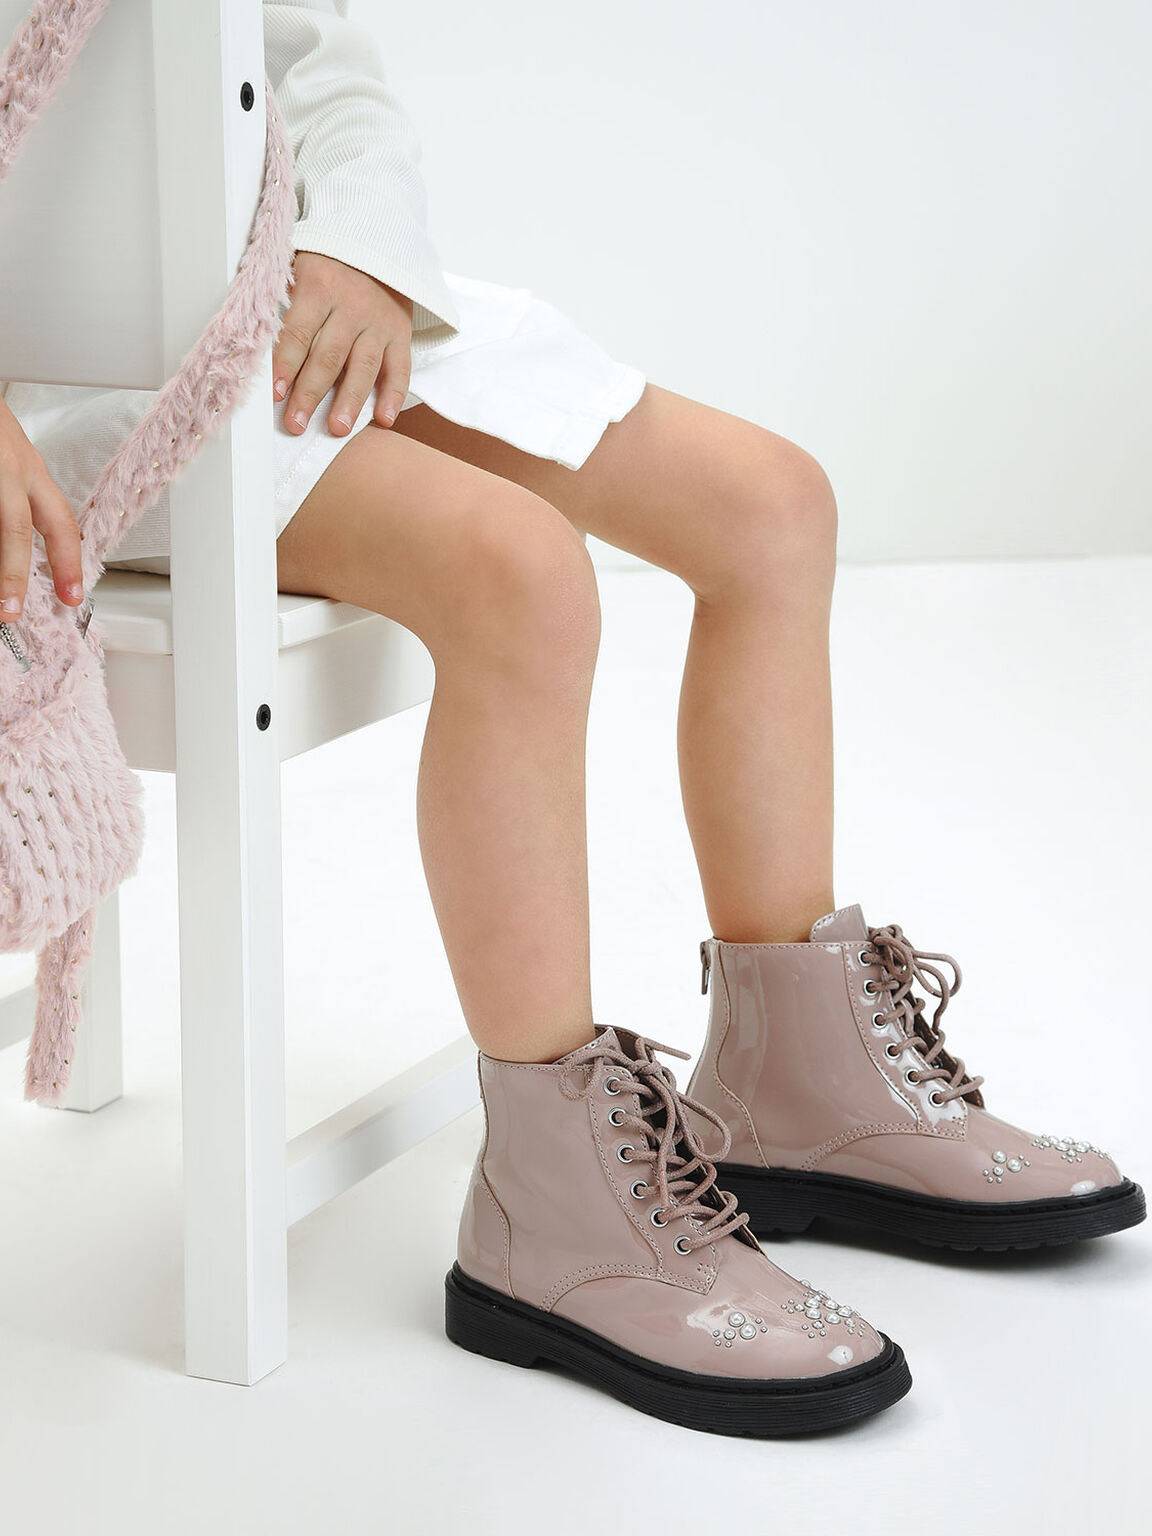 Girls' Embellished Patent Lace-up Boots, Nude, hi-res